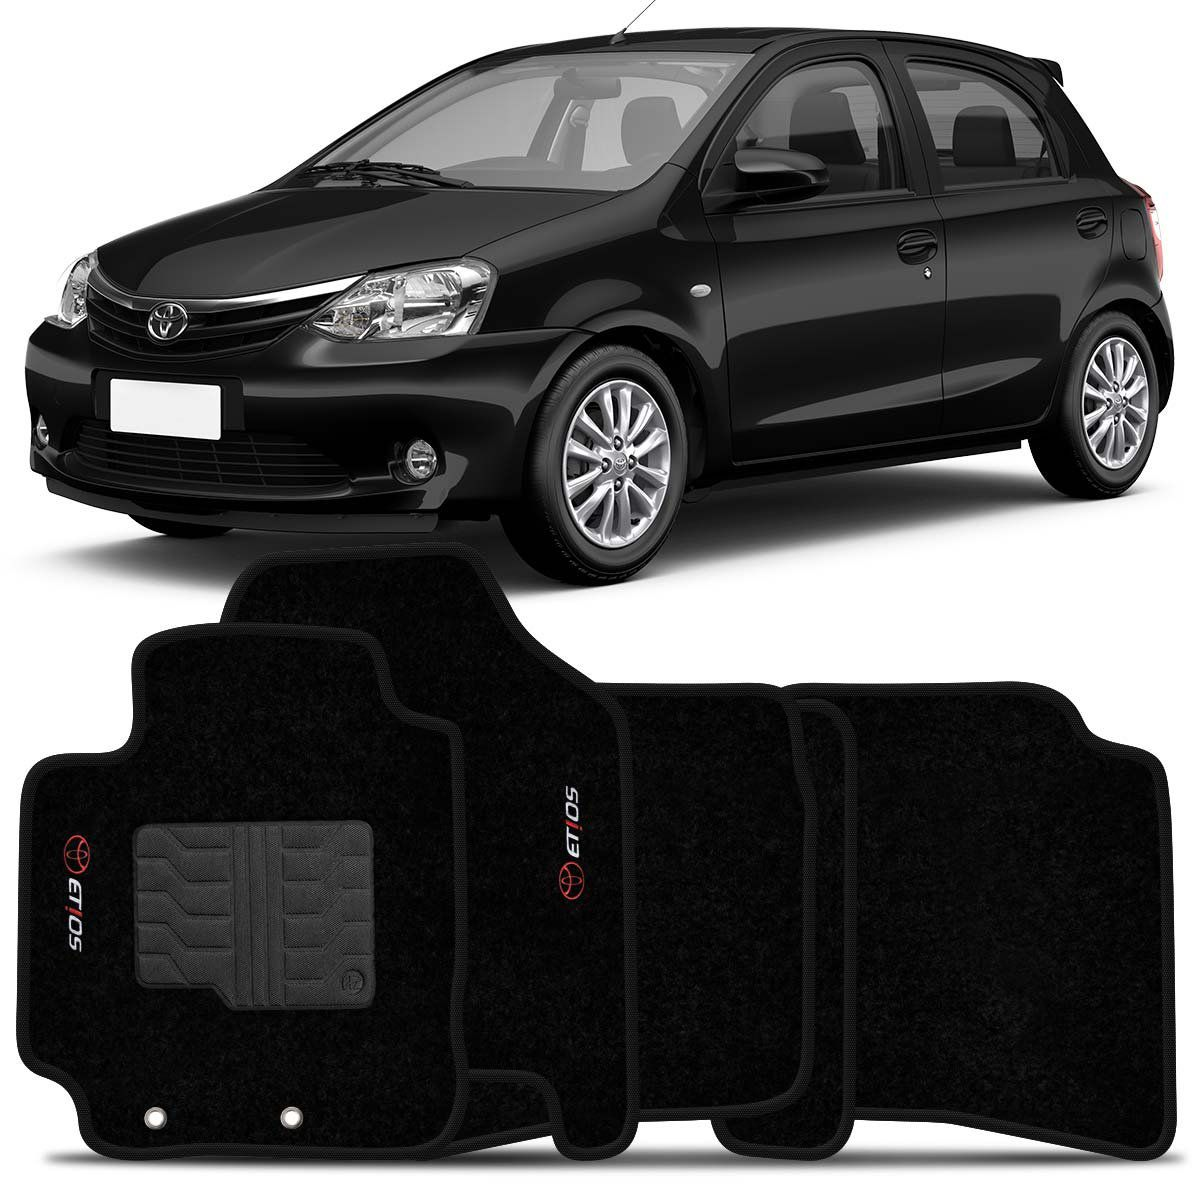 Tapete Carpete Etios Hatch e Sedan 2013 2014 Preto